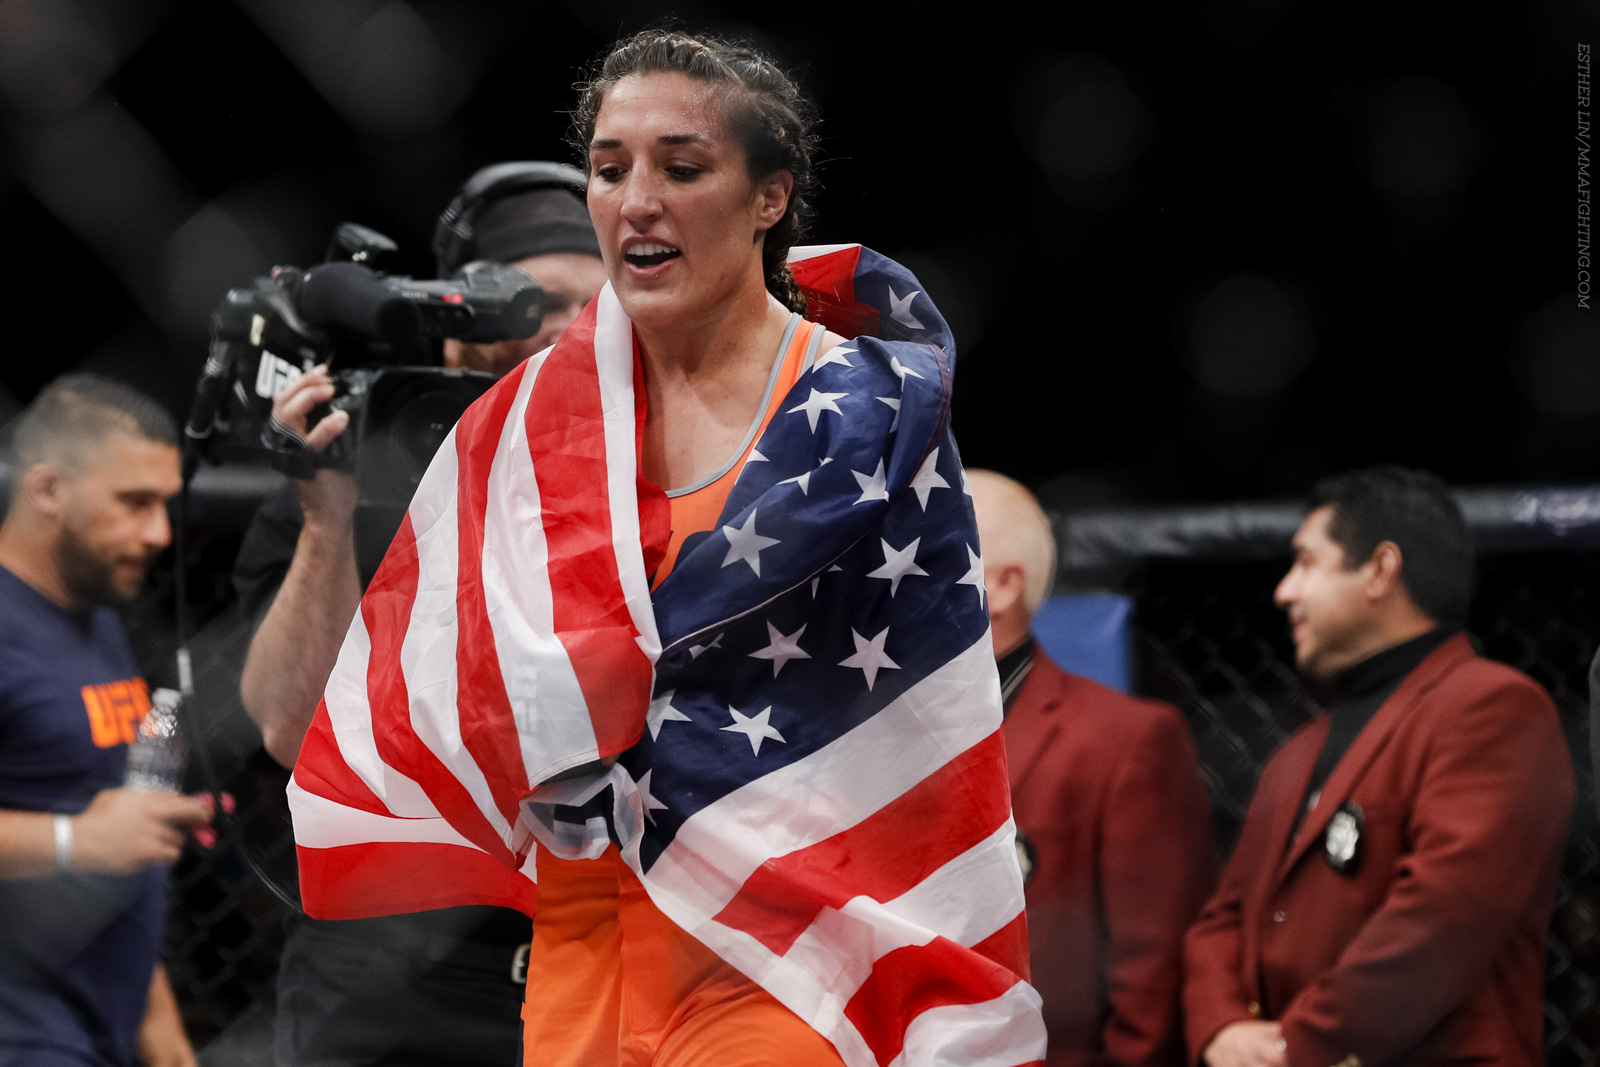 The Ultimate Fighter 23 Finale photos